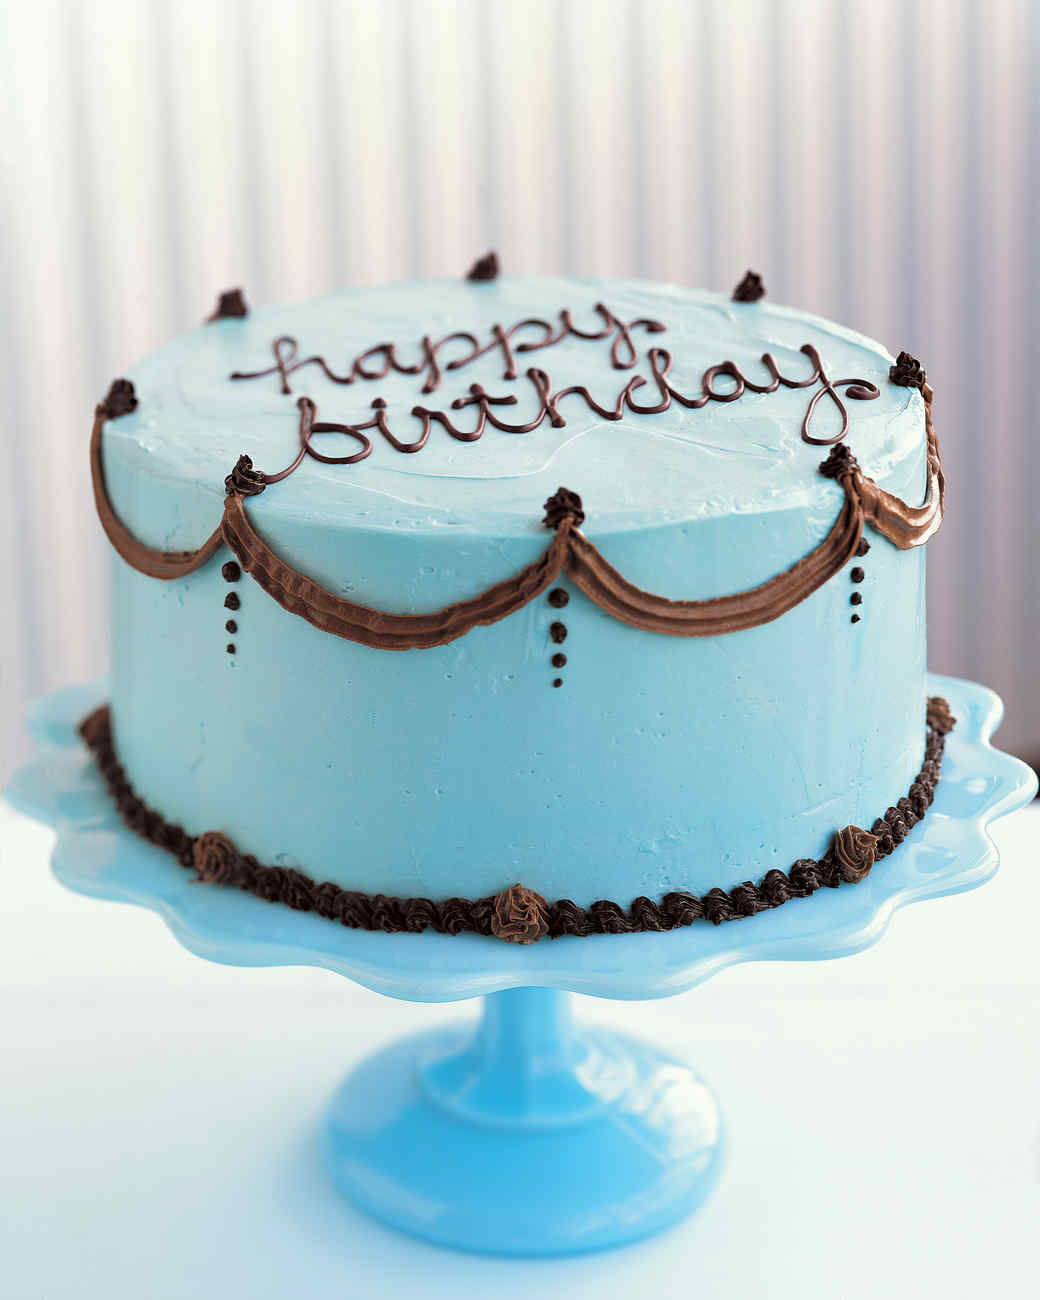 Birthday Cake Decoration Images : How to Decorate a Birthday Cake Martha Stewart